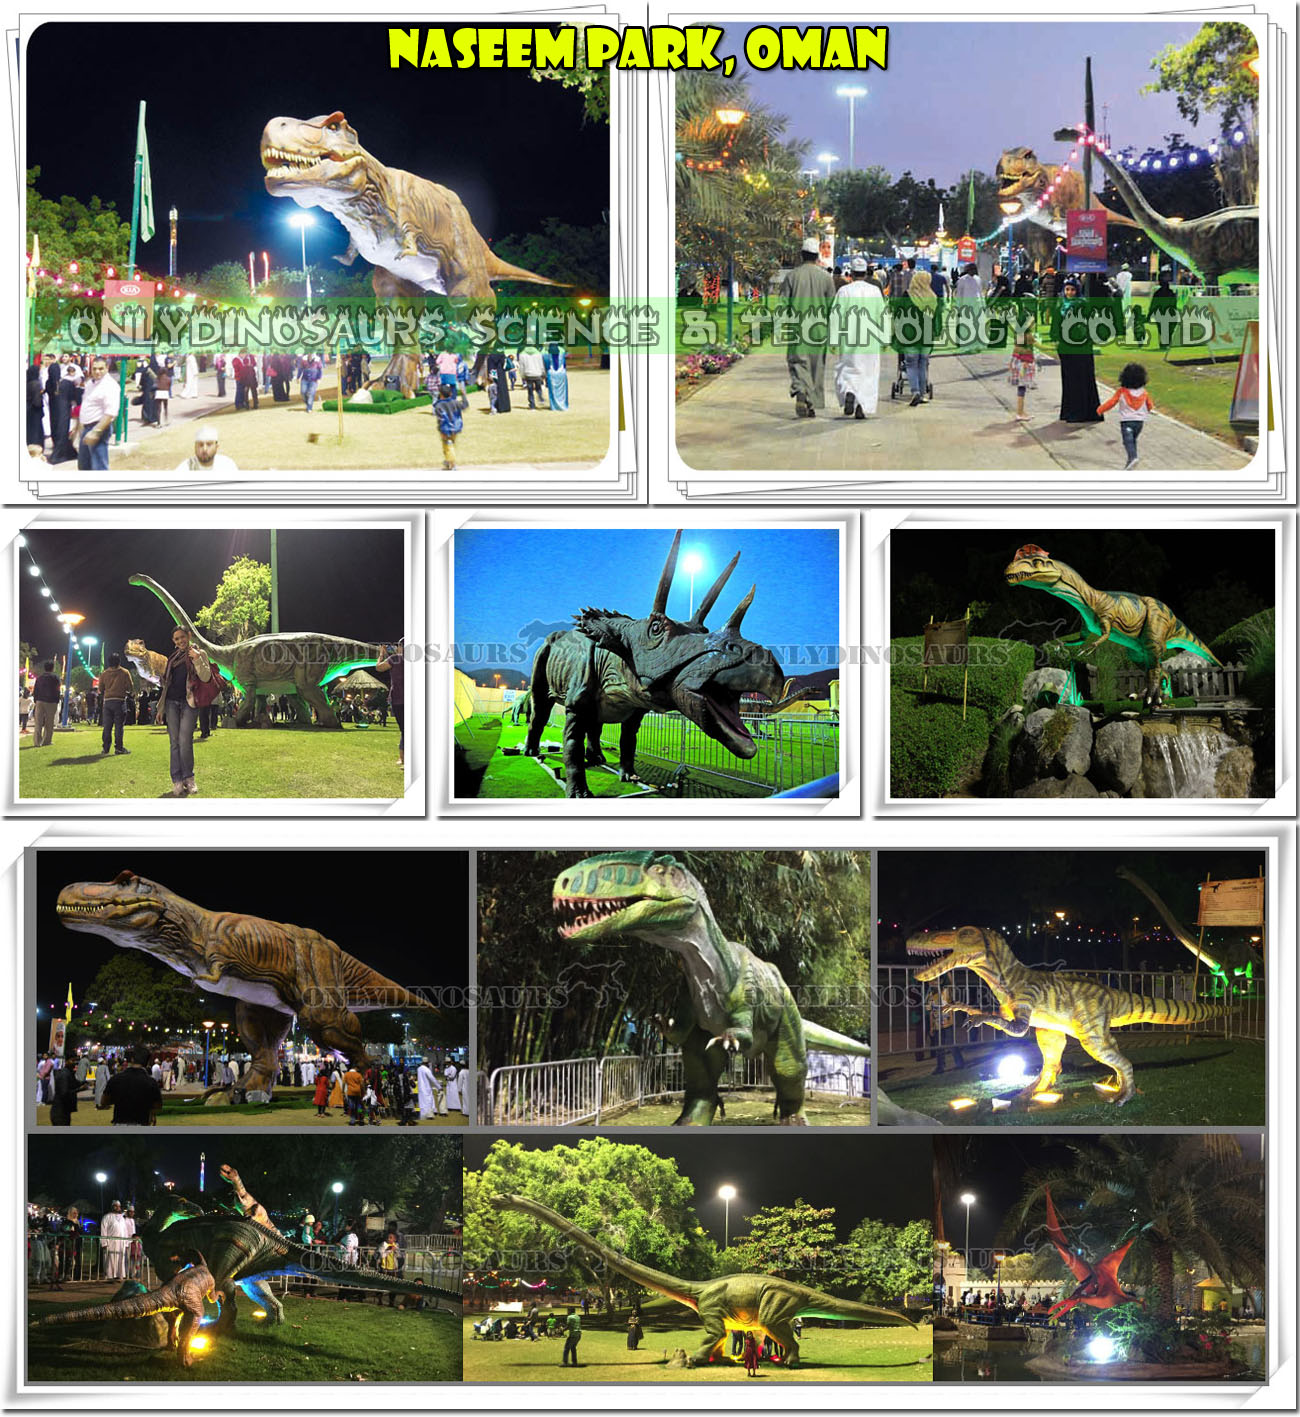 Dinosaur Exhibition at Naseem Park